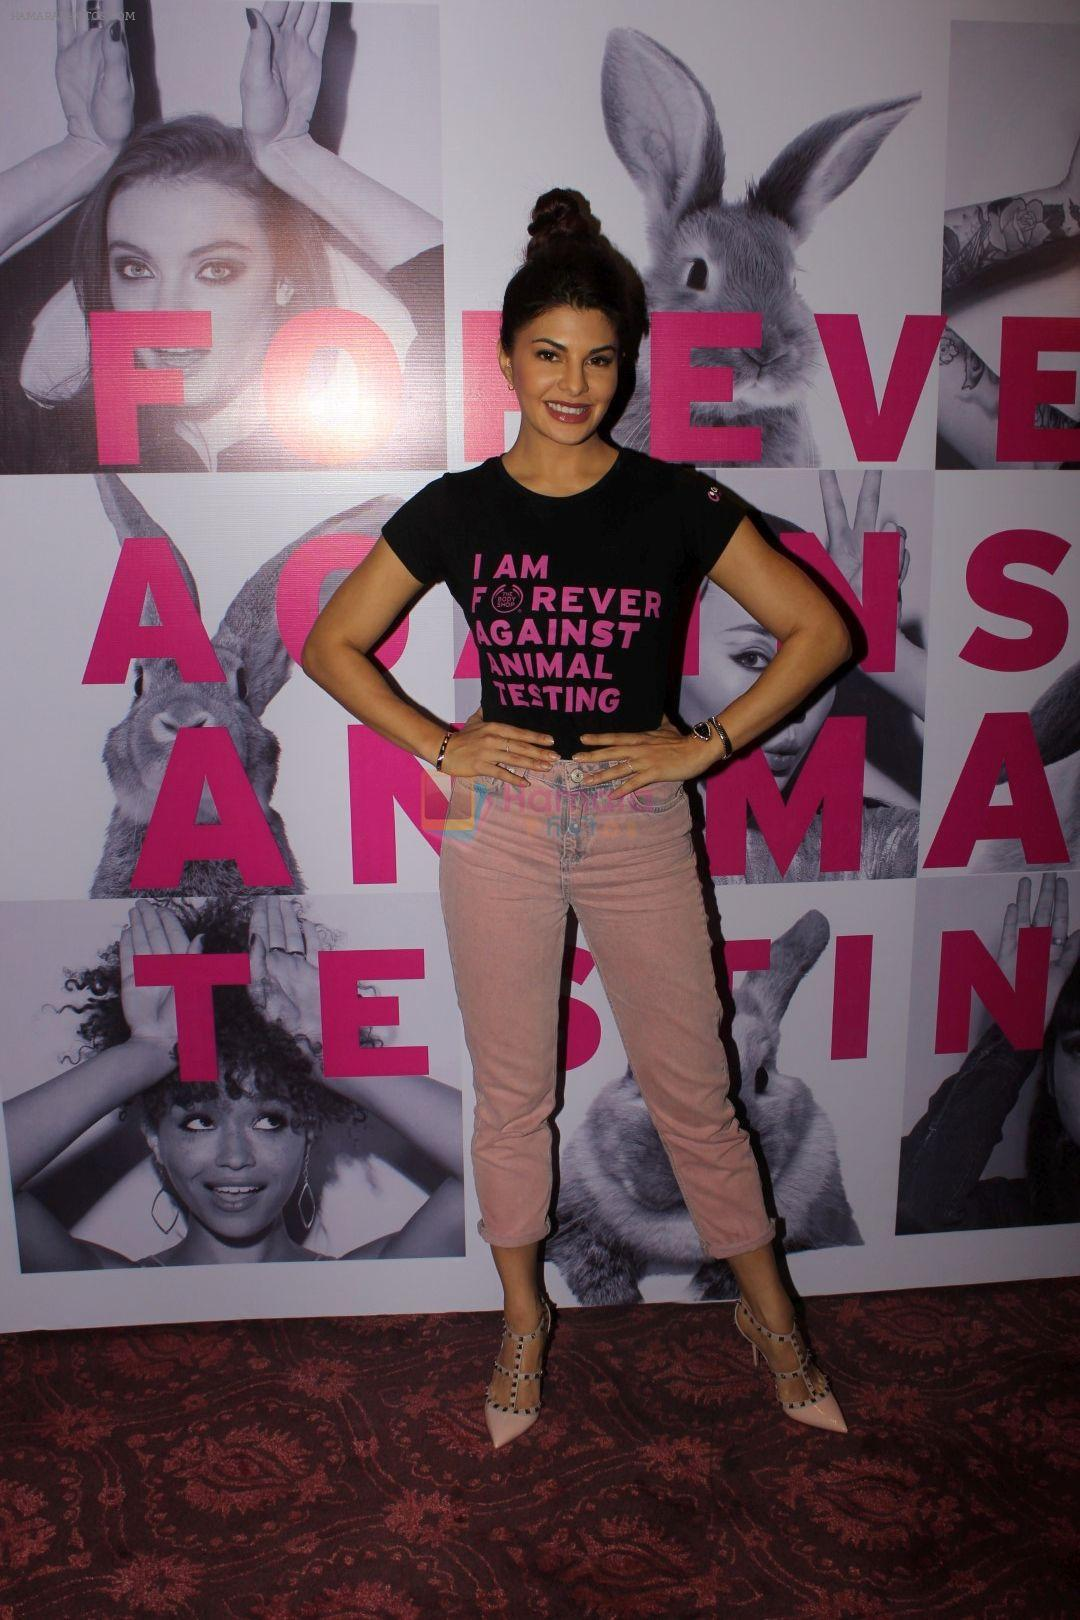 Jacqueline Fernandez at support for Iam forever against animal testing event on 9th June 2017